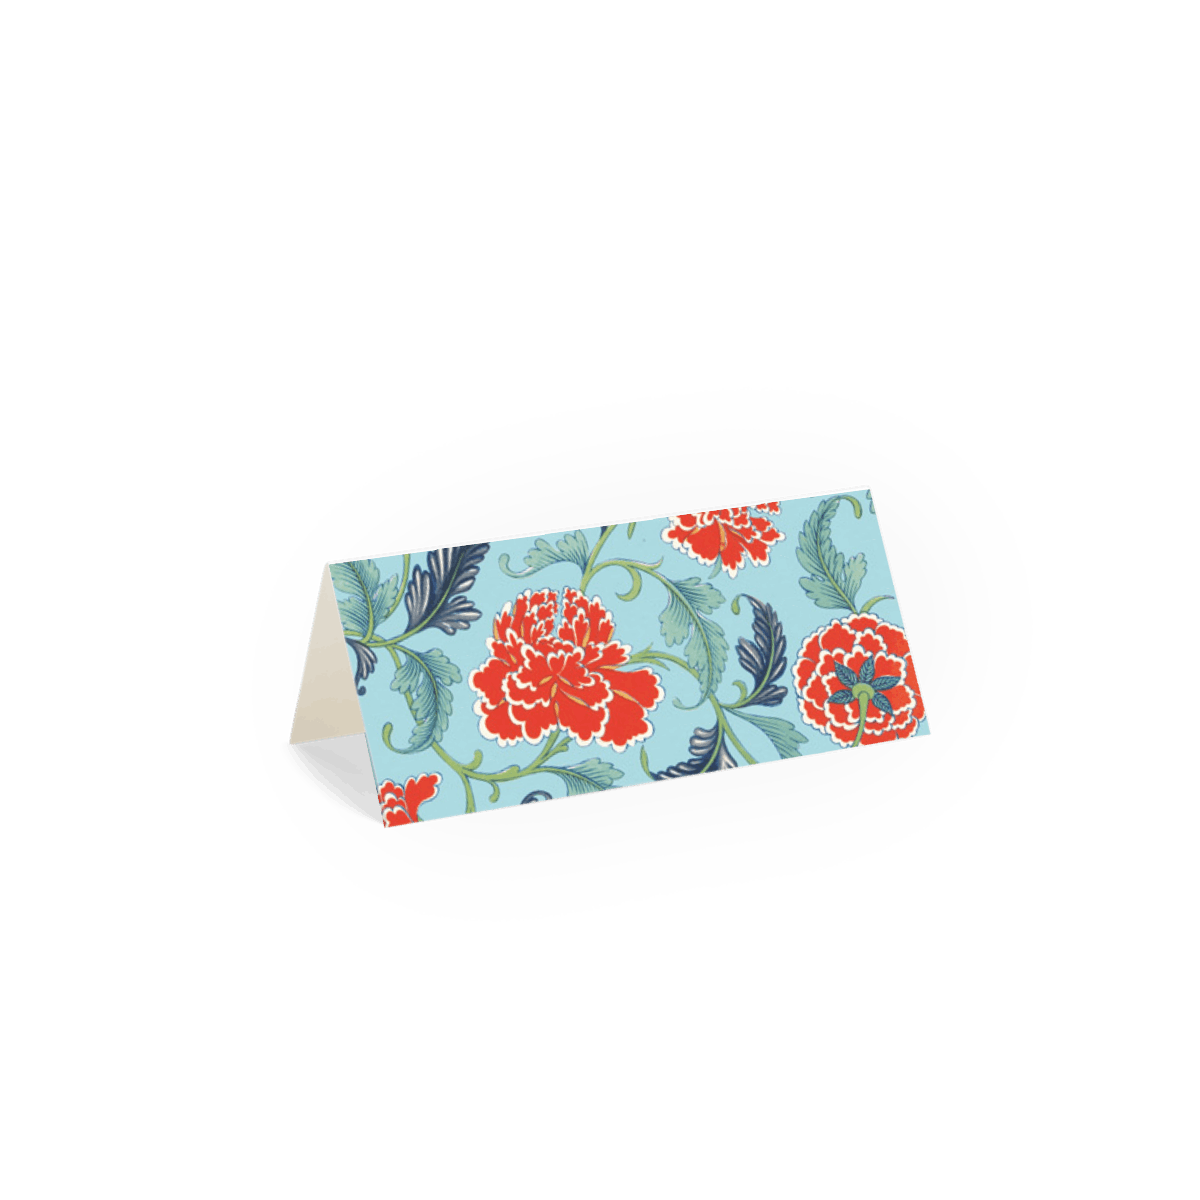 Https%3a%2f%2fwww.papier.com%2fproduct image%2f82547%2f15%2fred carnations 19986 back 1562152831.png?ixlib=rb 1.1